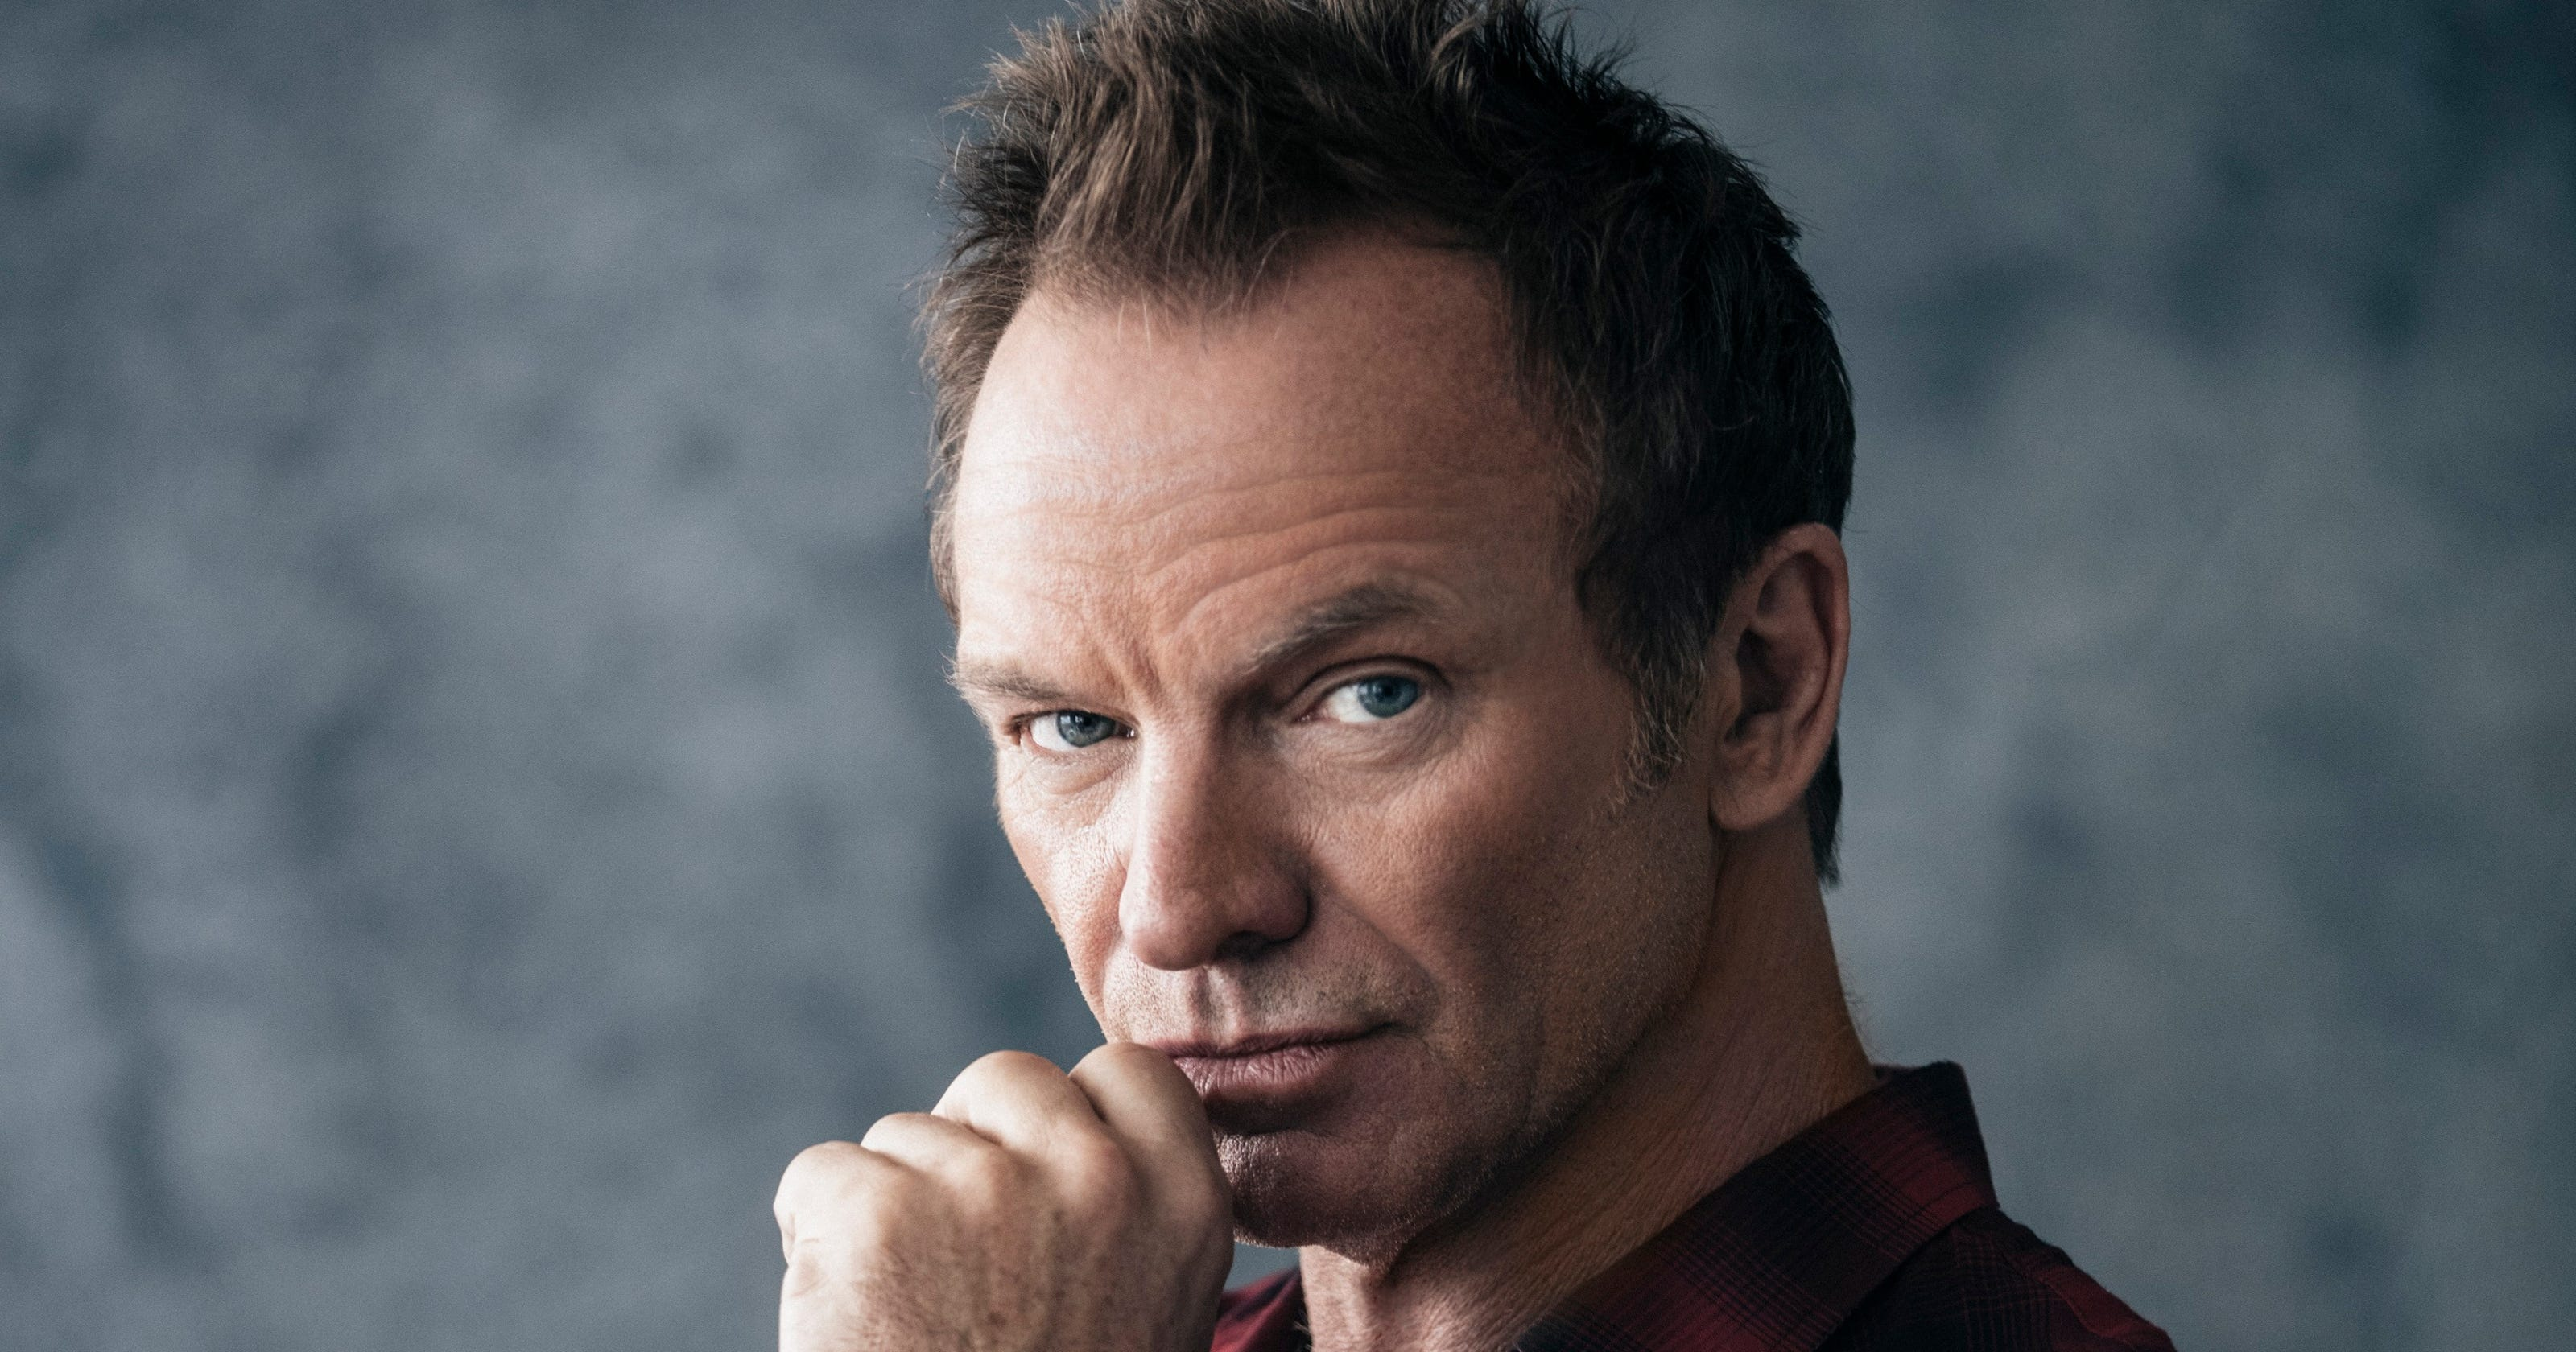 Sting on Nashville, death and the creative spark